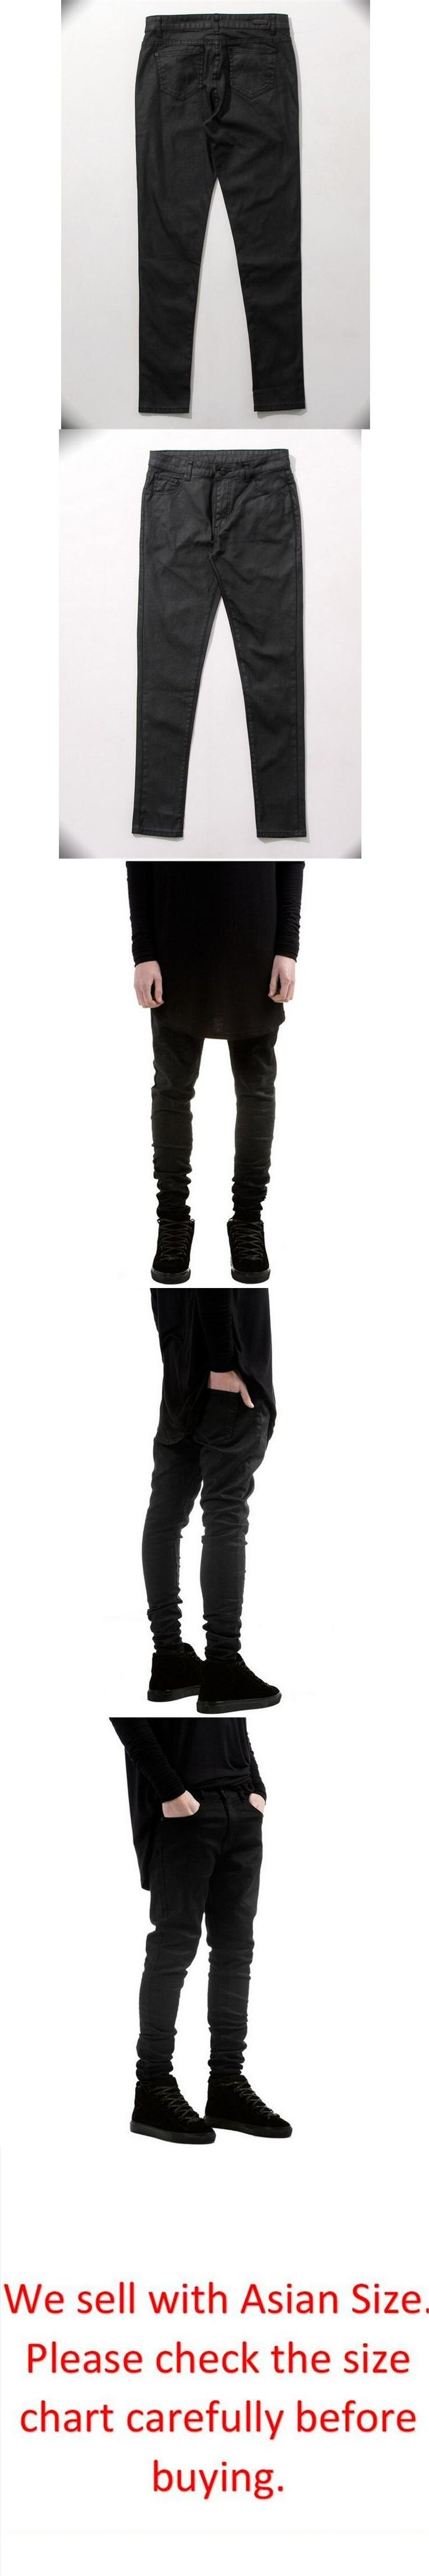 Mens Slim Fitness Skinny Pencil Pants Kanye West High Street Fashion Joggers Solid Black Biker Motorcycle Jeans Plus Size 36